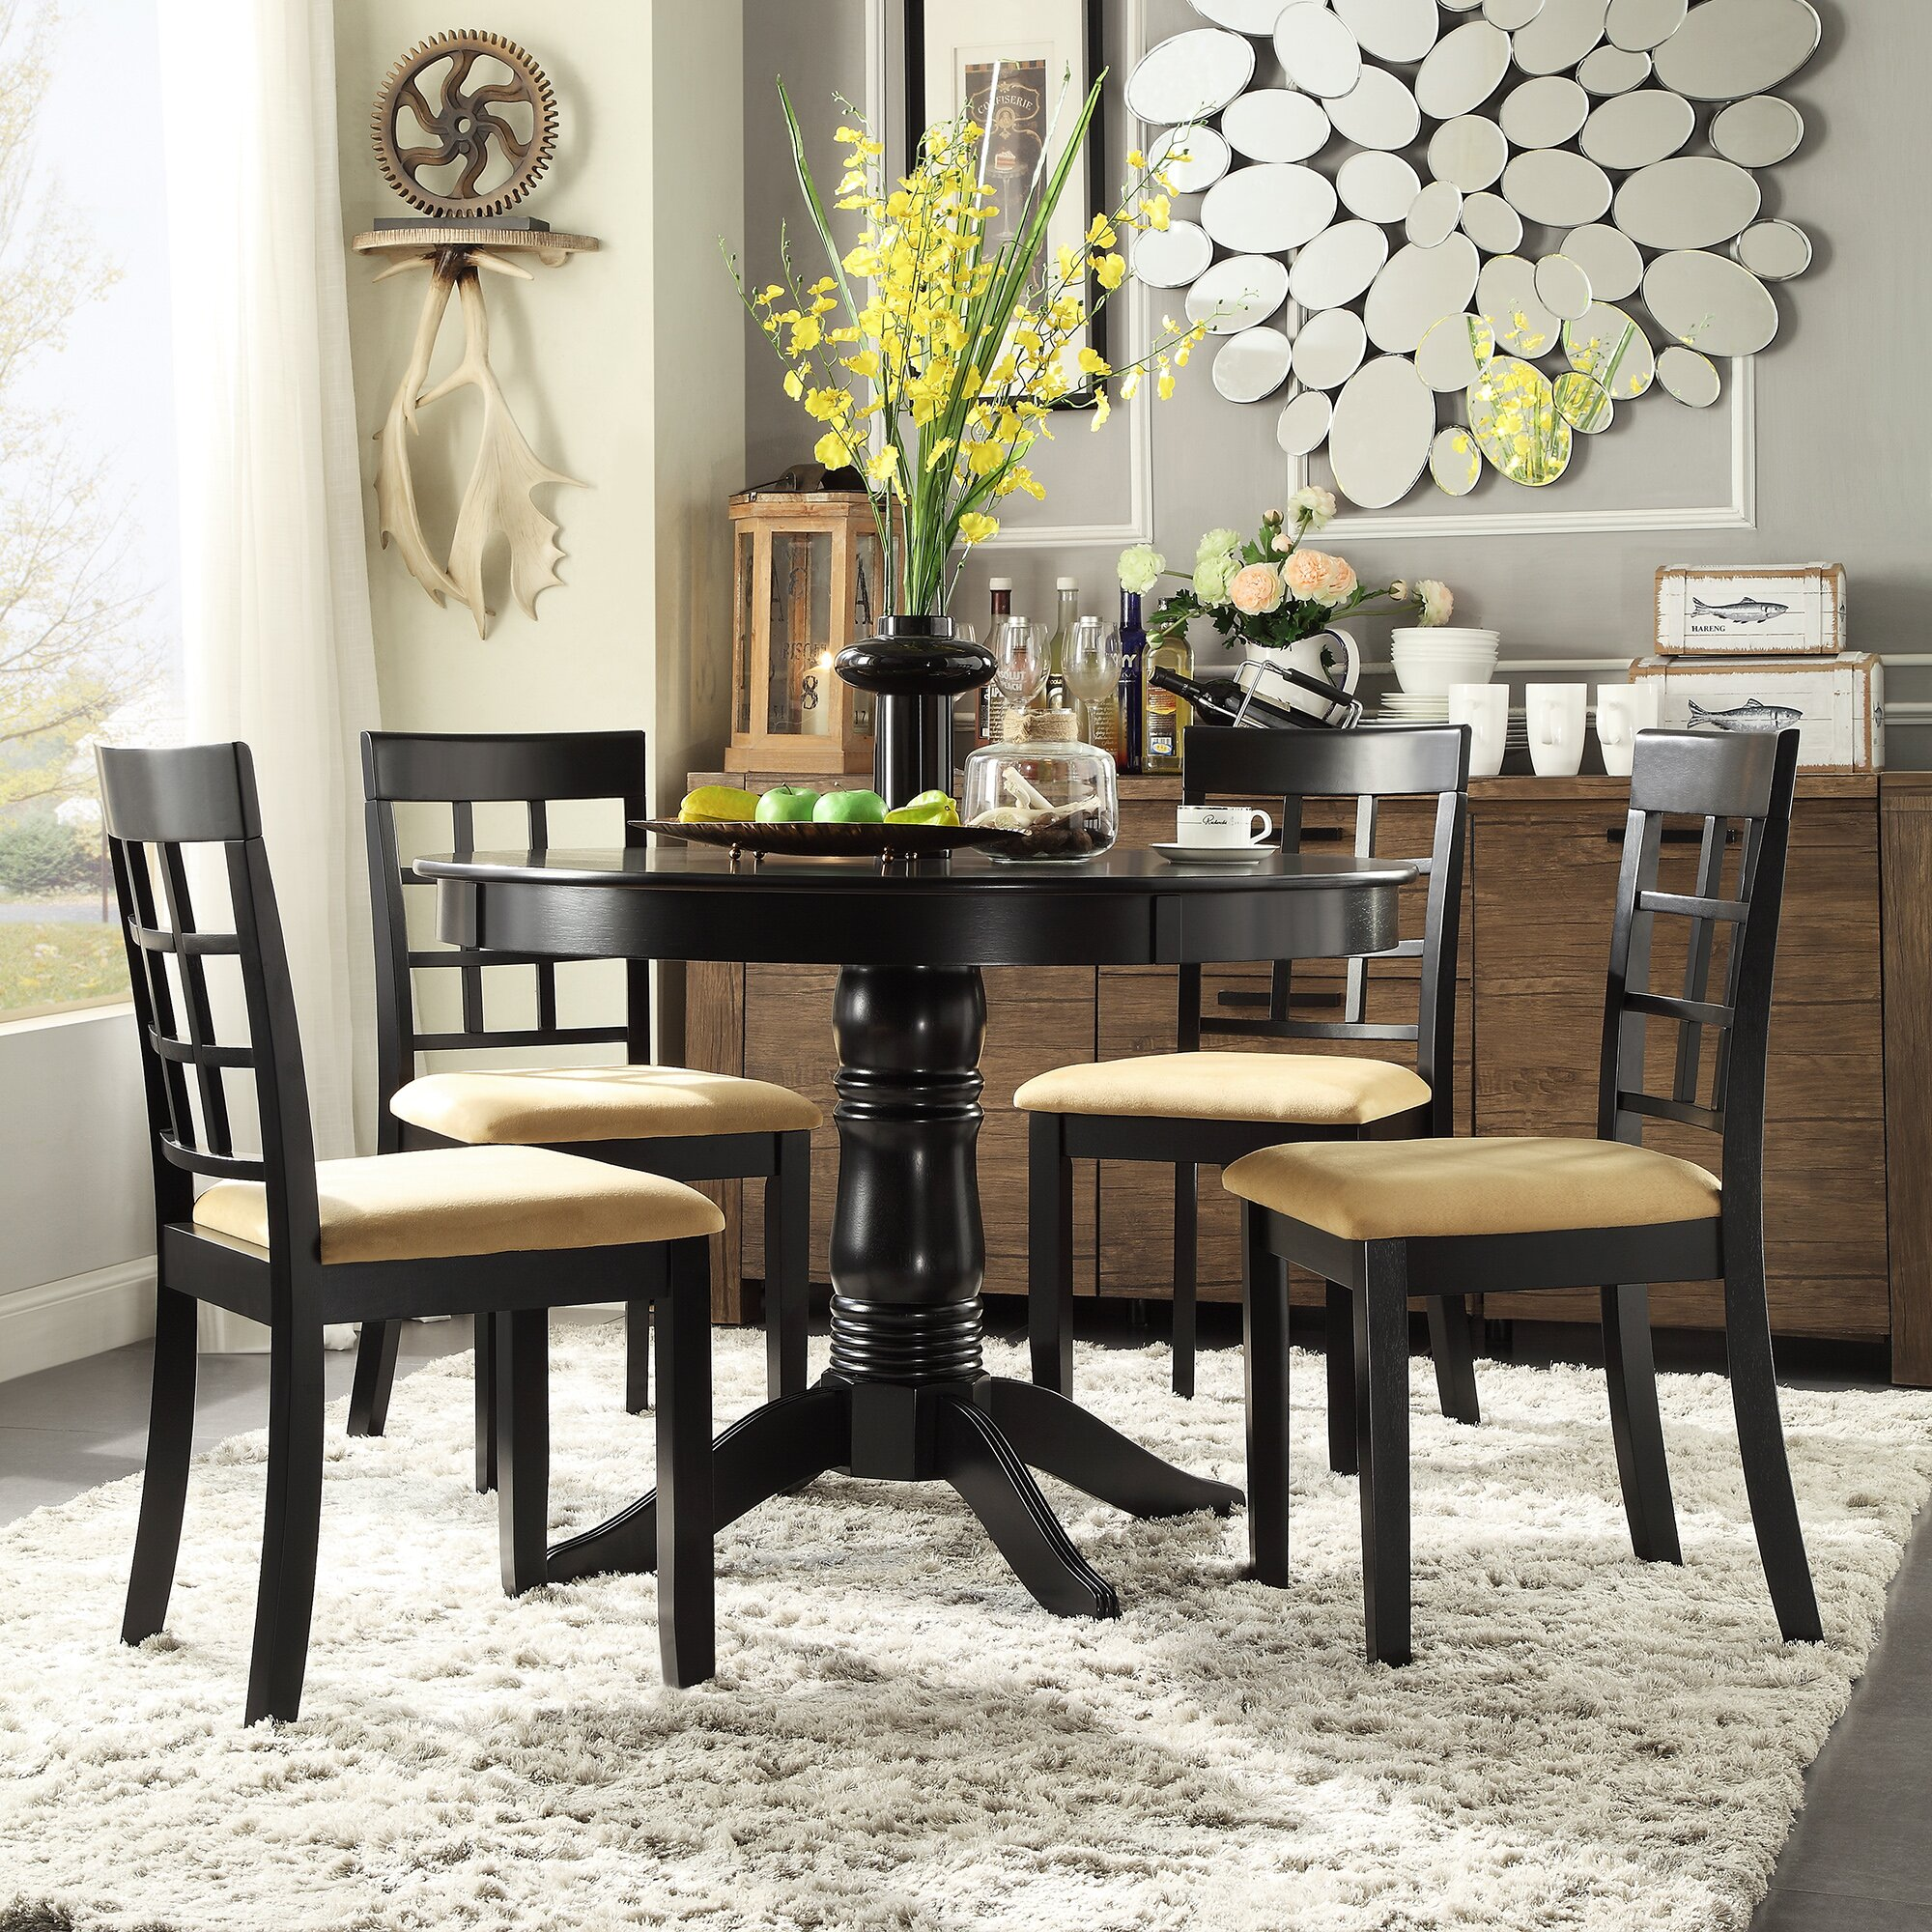 5 Piece Round Dining Set: Kingstown Home Jeannette 5 Piece Round Dining Set